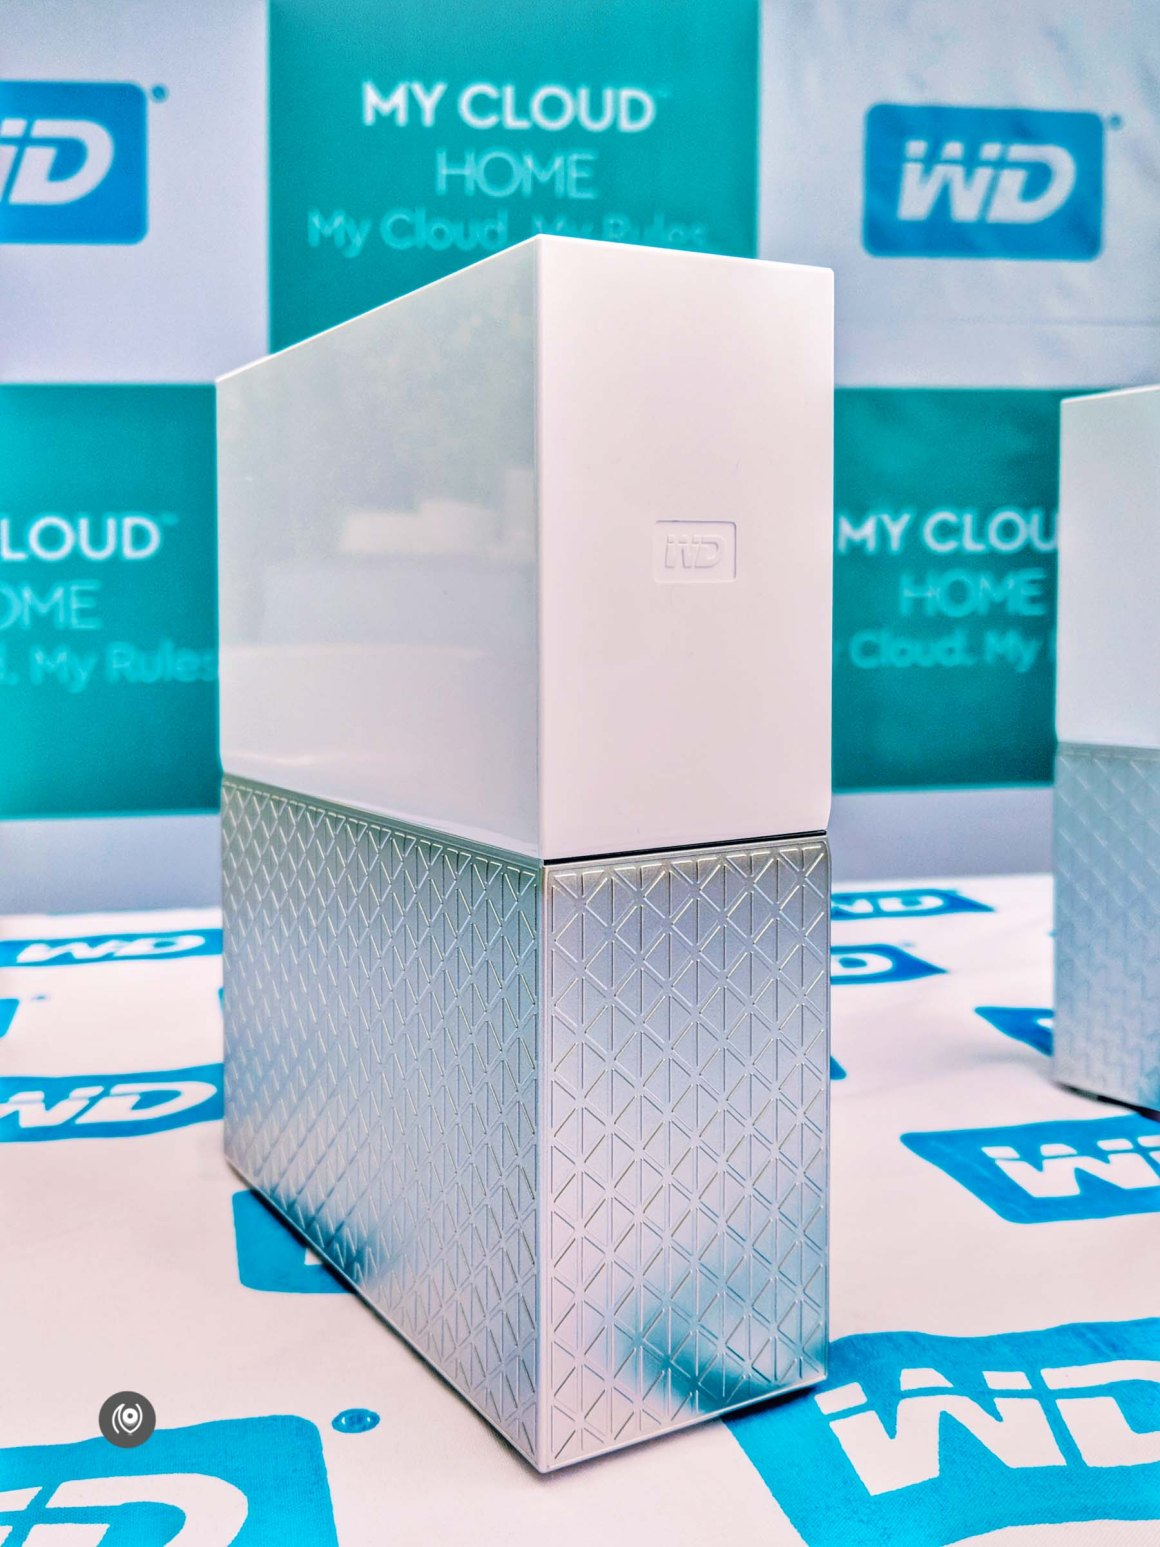 Naina.co, EyesForTechnology, Western Digital, WDCreators, MyCloudMyRules, Hard Disk Drive, Hard Drive, My Cloud Home, My Cloud Home Duo, Qutub, Olive, Launch Event, Client, New Delhi